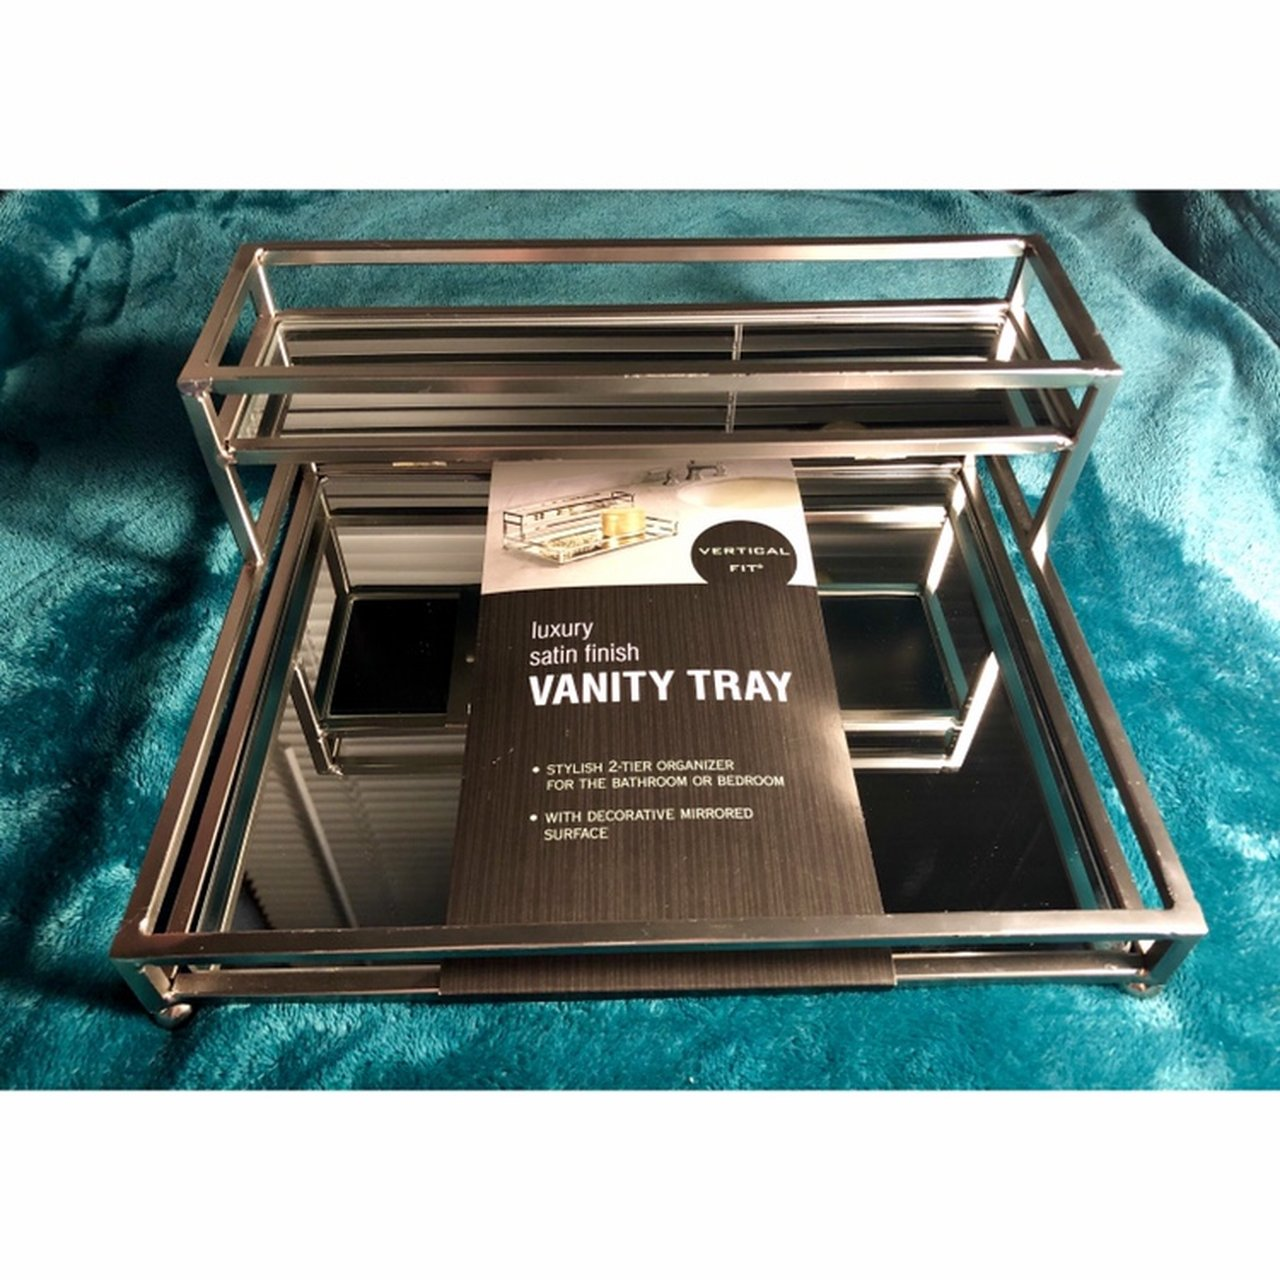 Luxury Satin Finish Vanity Tray Two Tier Organizer Depop